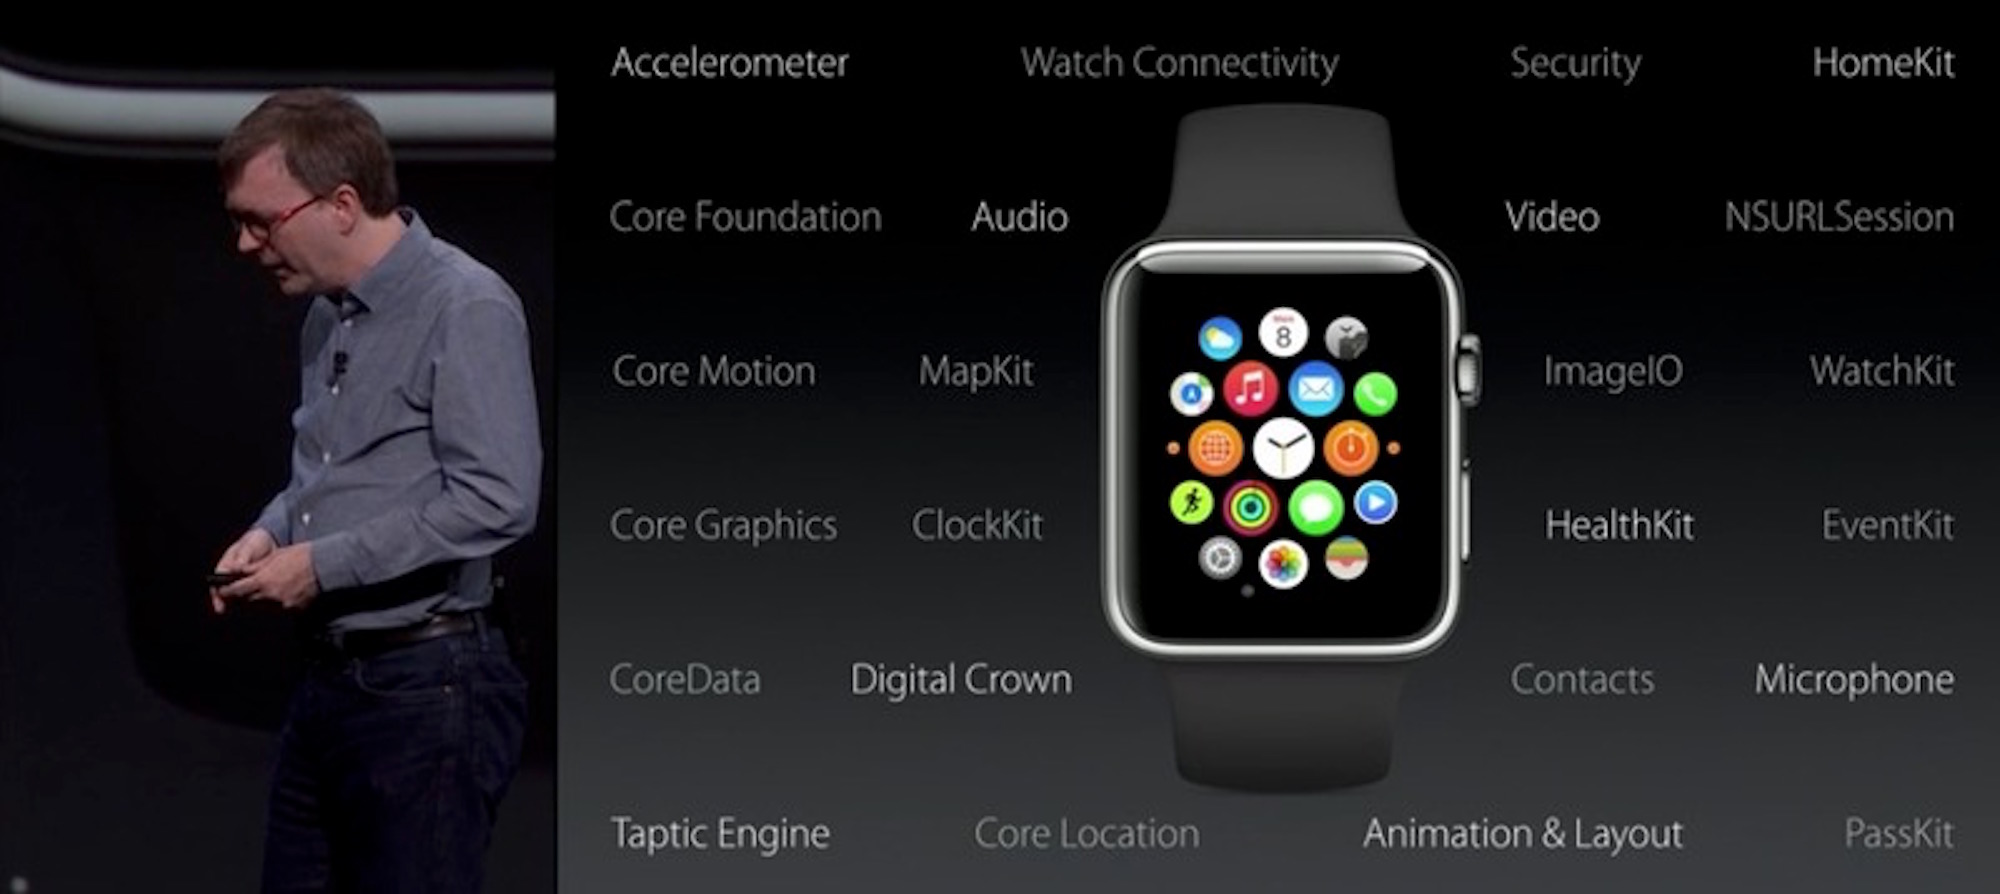 Estas son las novedades de Watch OS 2, el sistema del Apple Watch